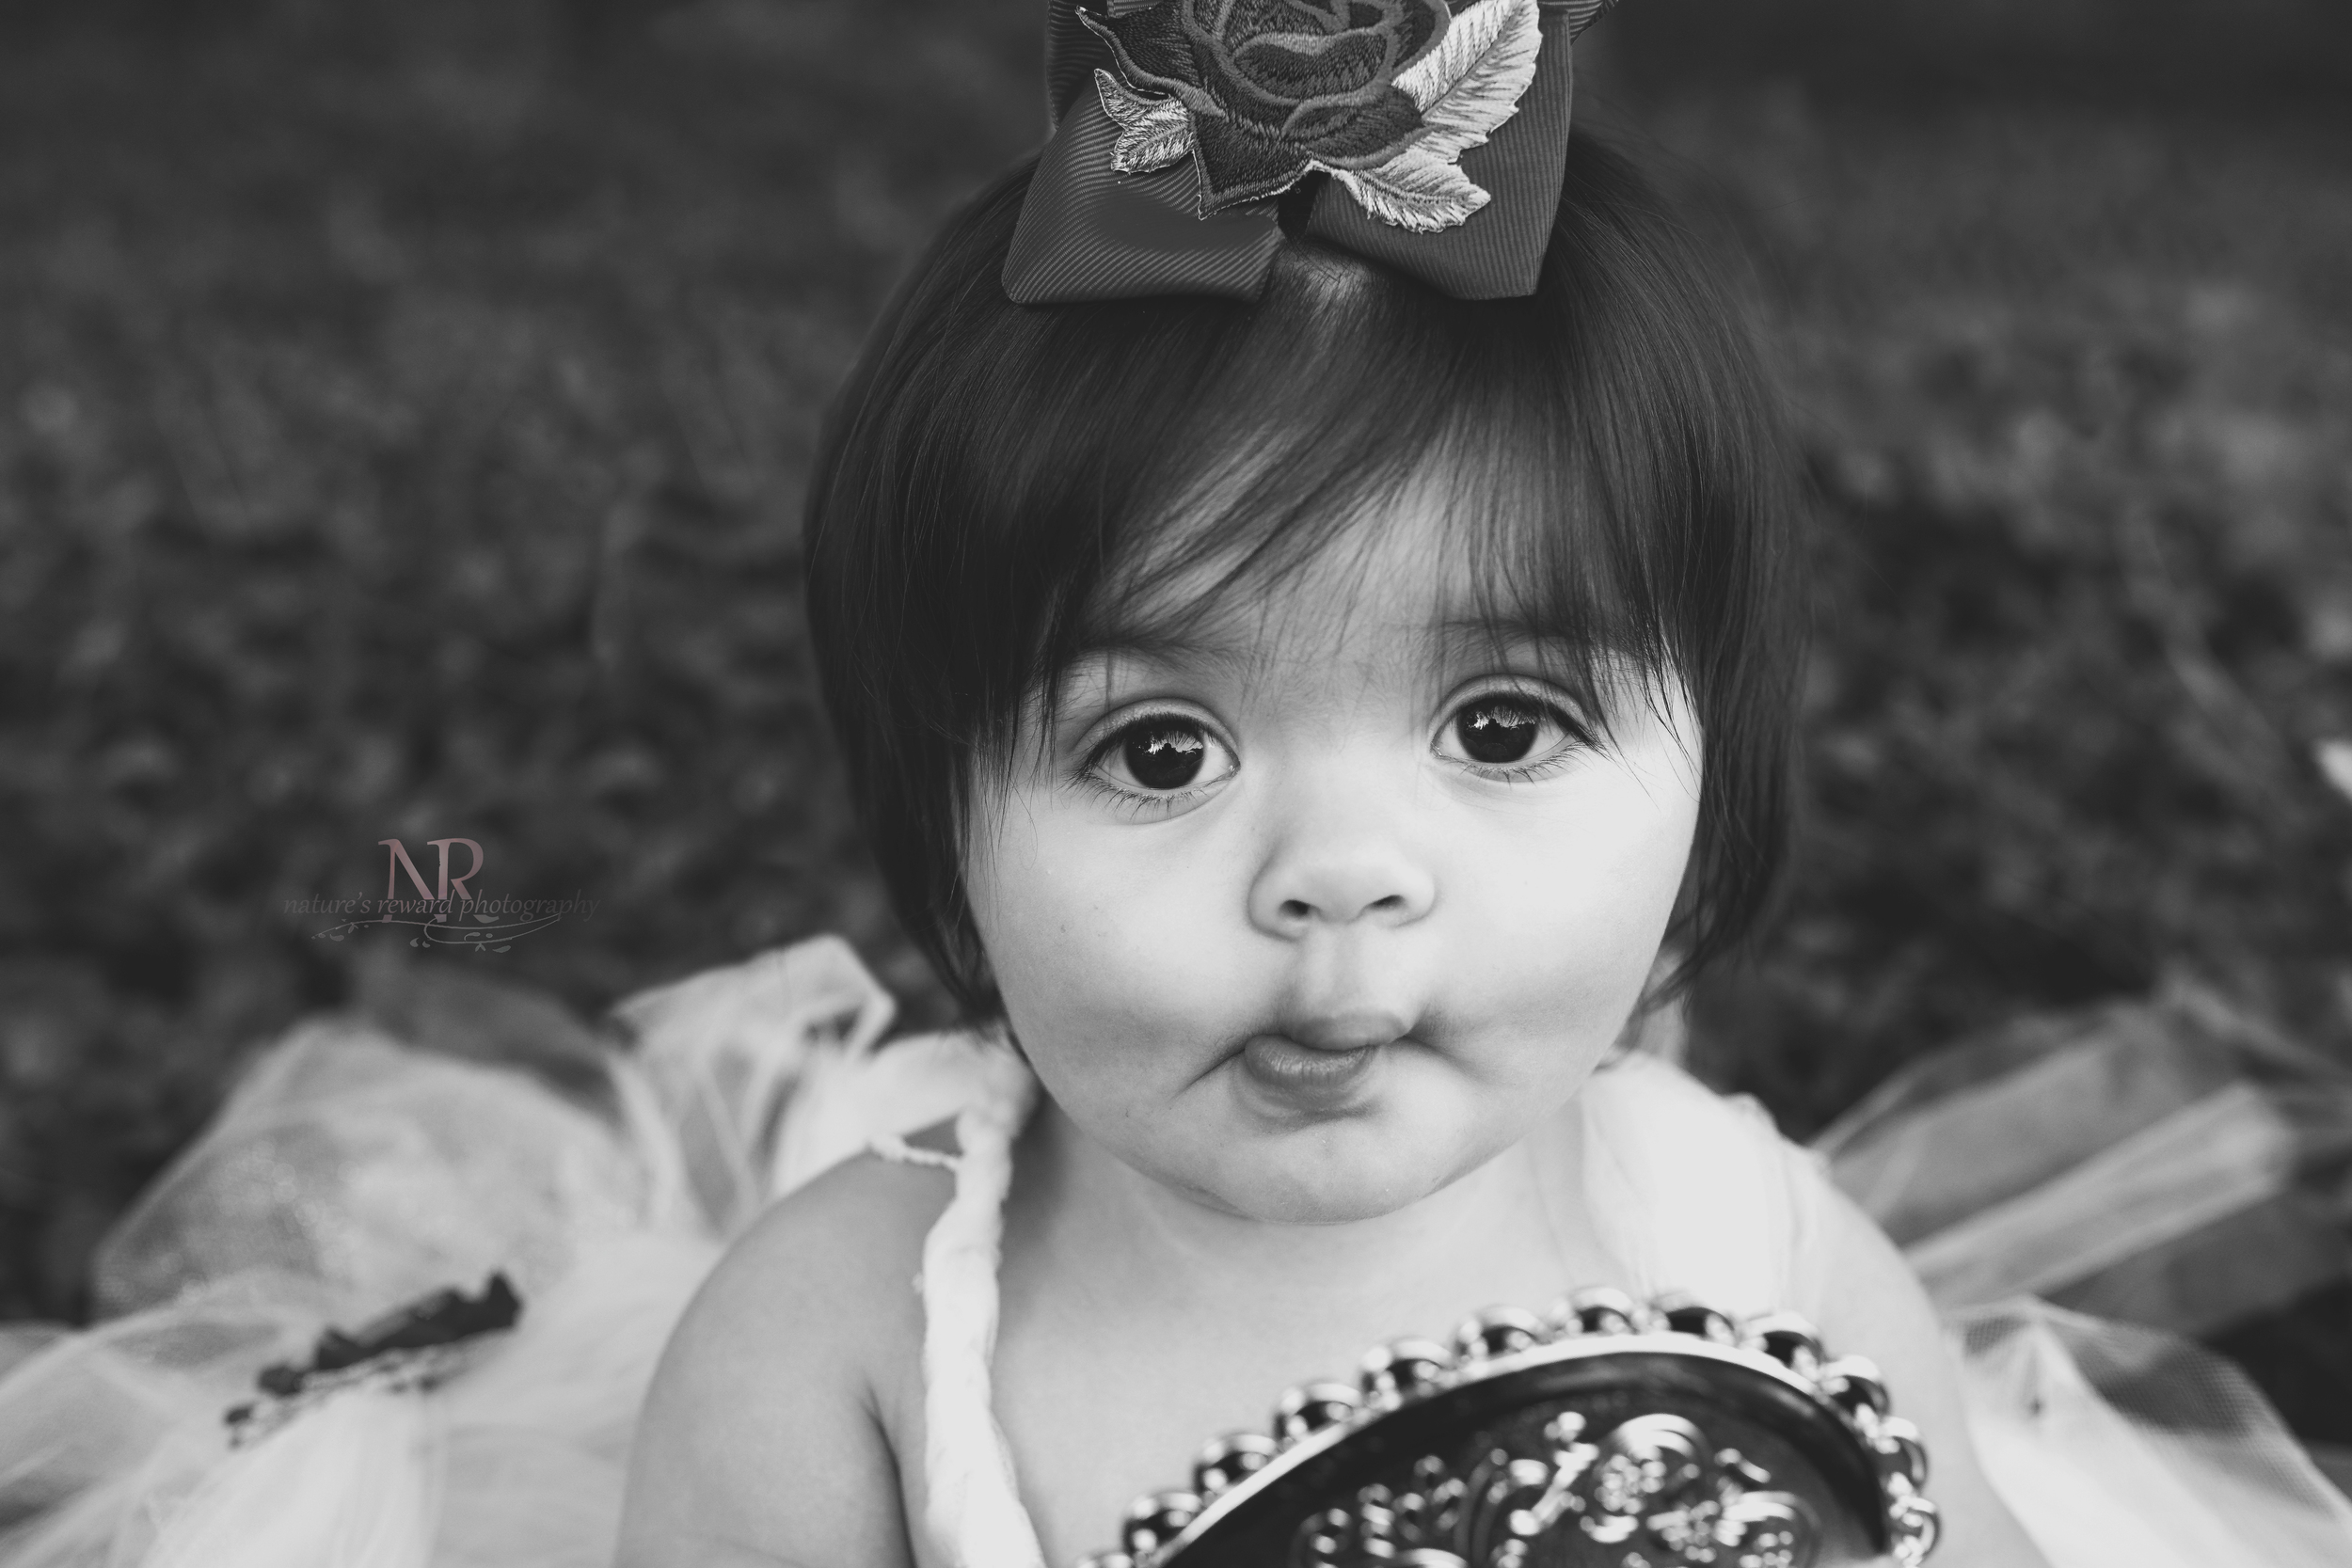 I have never enjoyed duck lips in a picture until this baby girl! She does this when she is being shy! OMG I could hardly contain mysel f- she is so stinking cute! Those Big eyes!